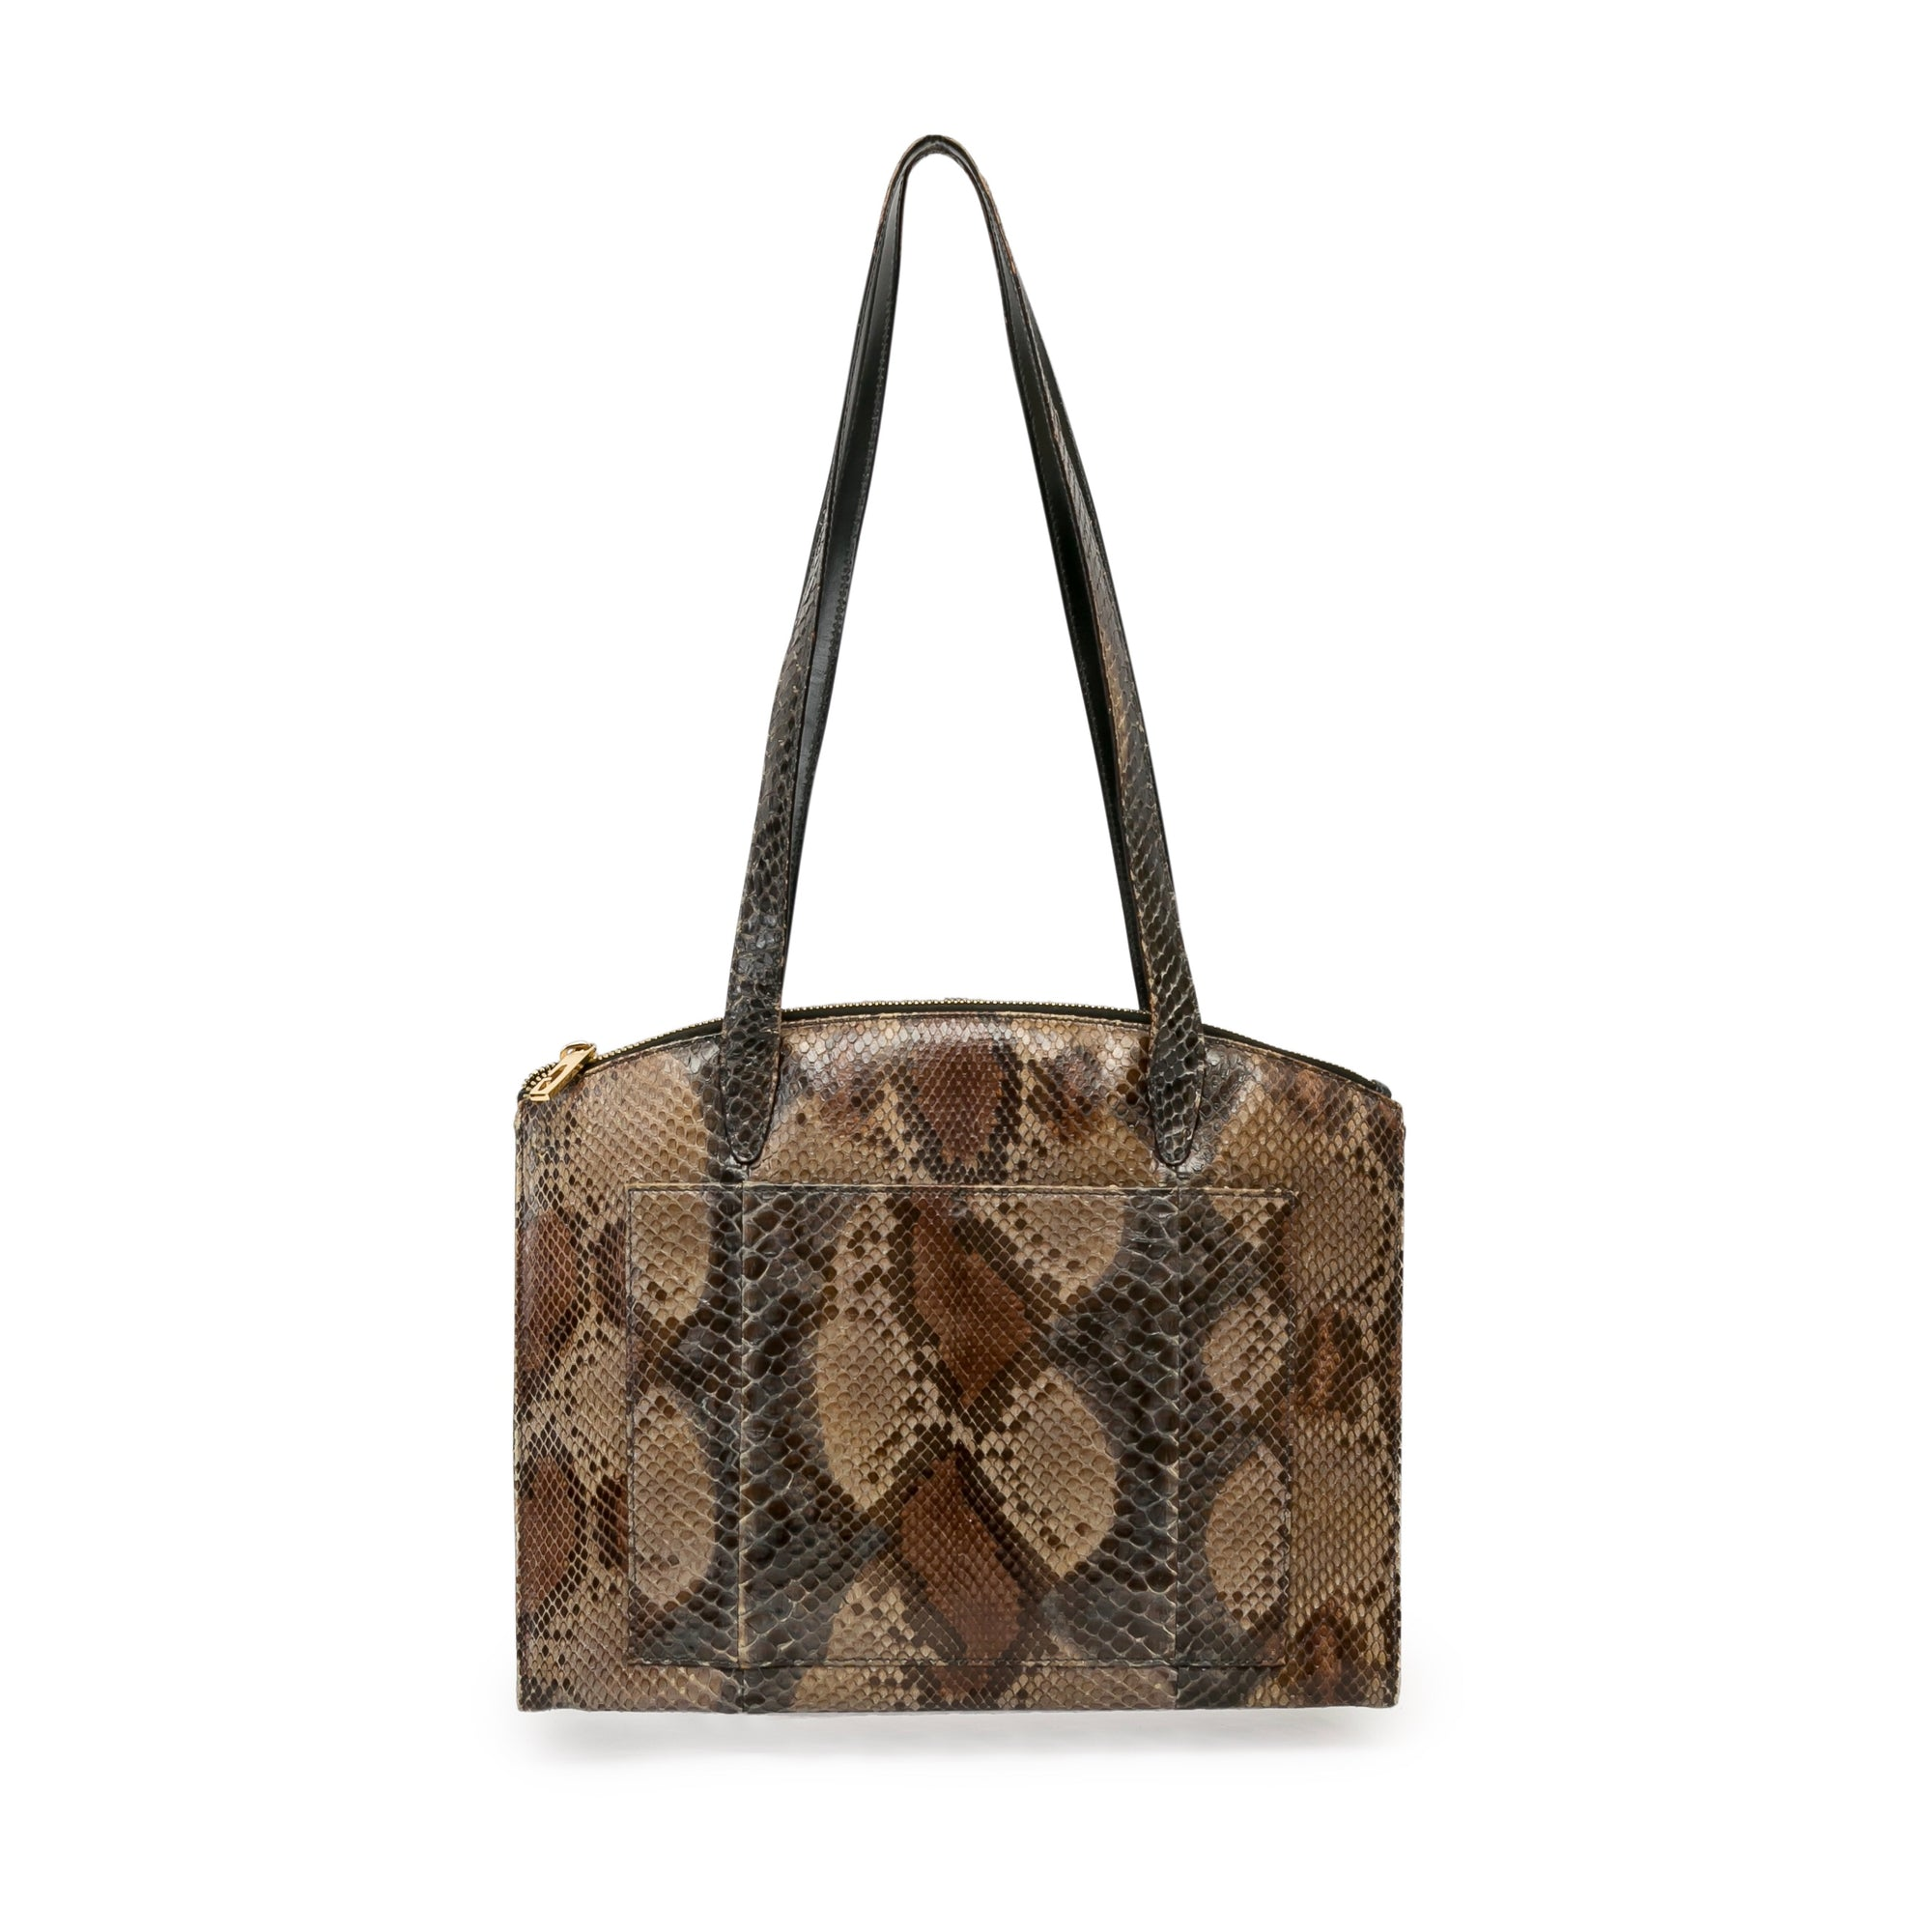 Gucci Vintage Snakeskin Shoulder Bag